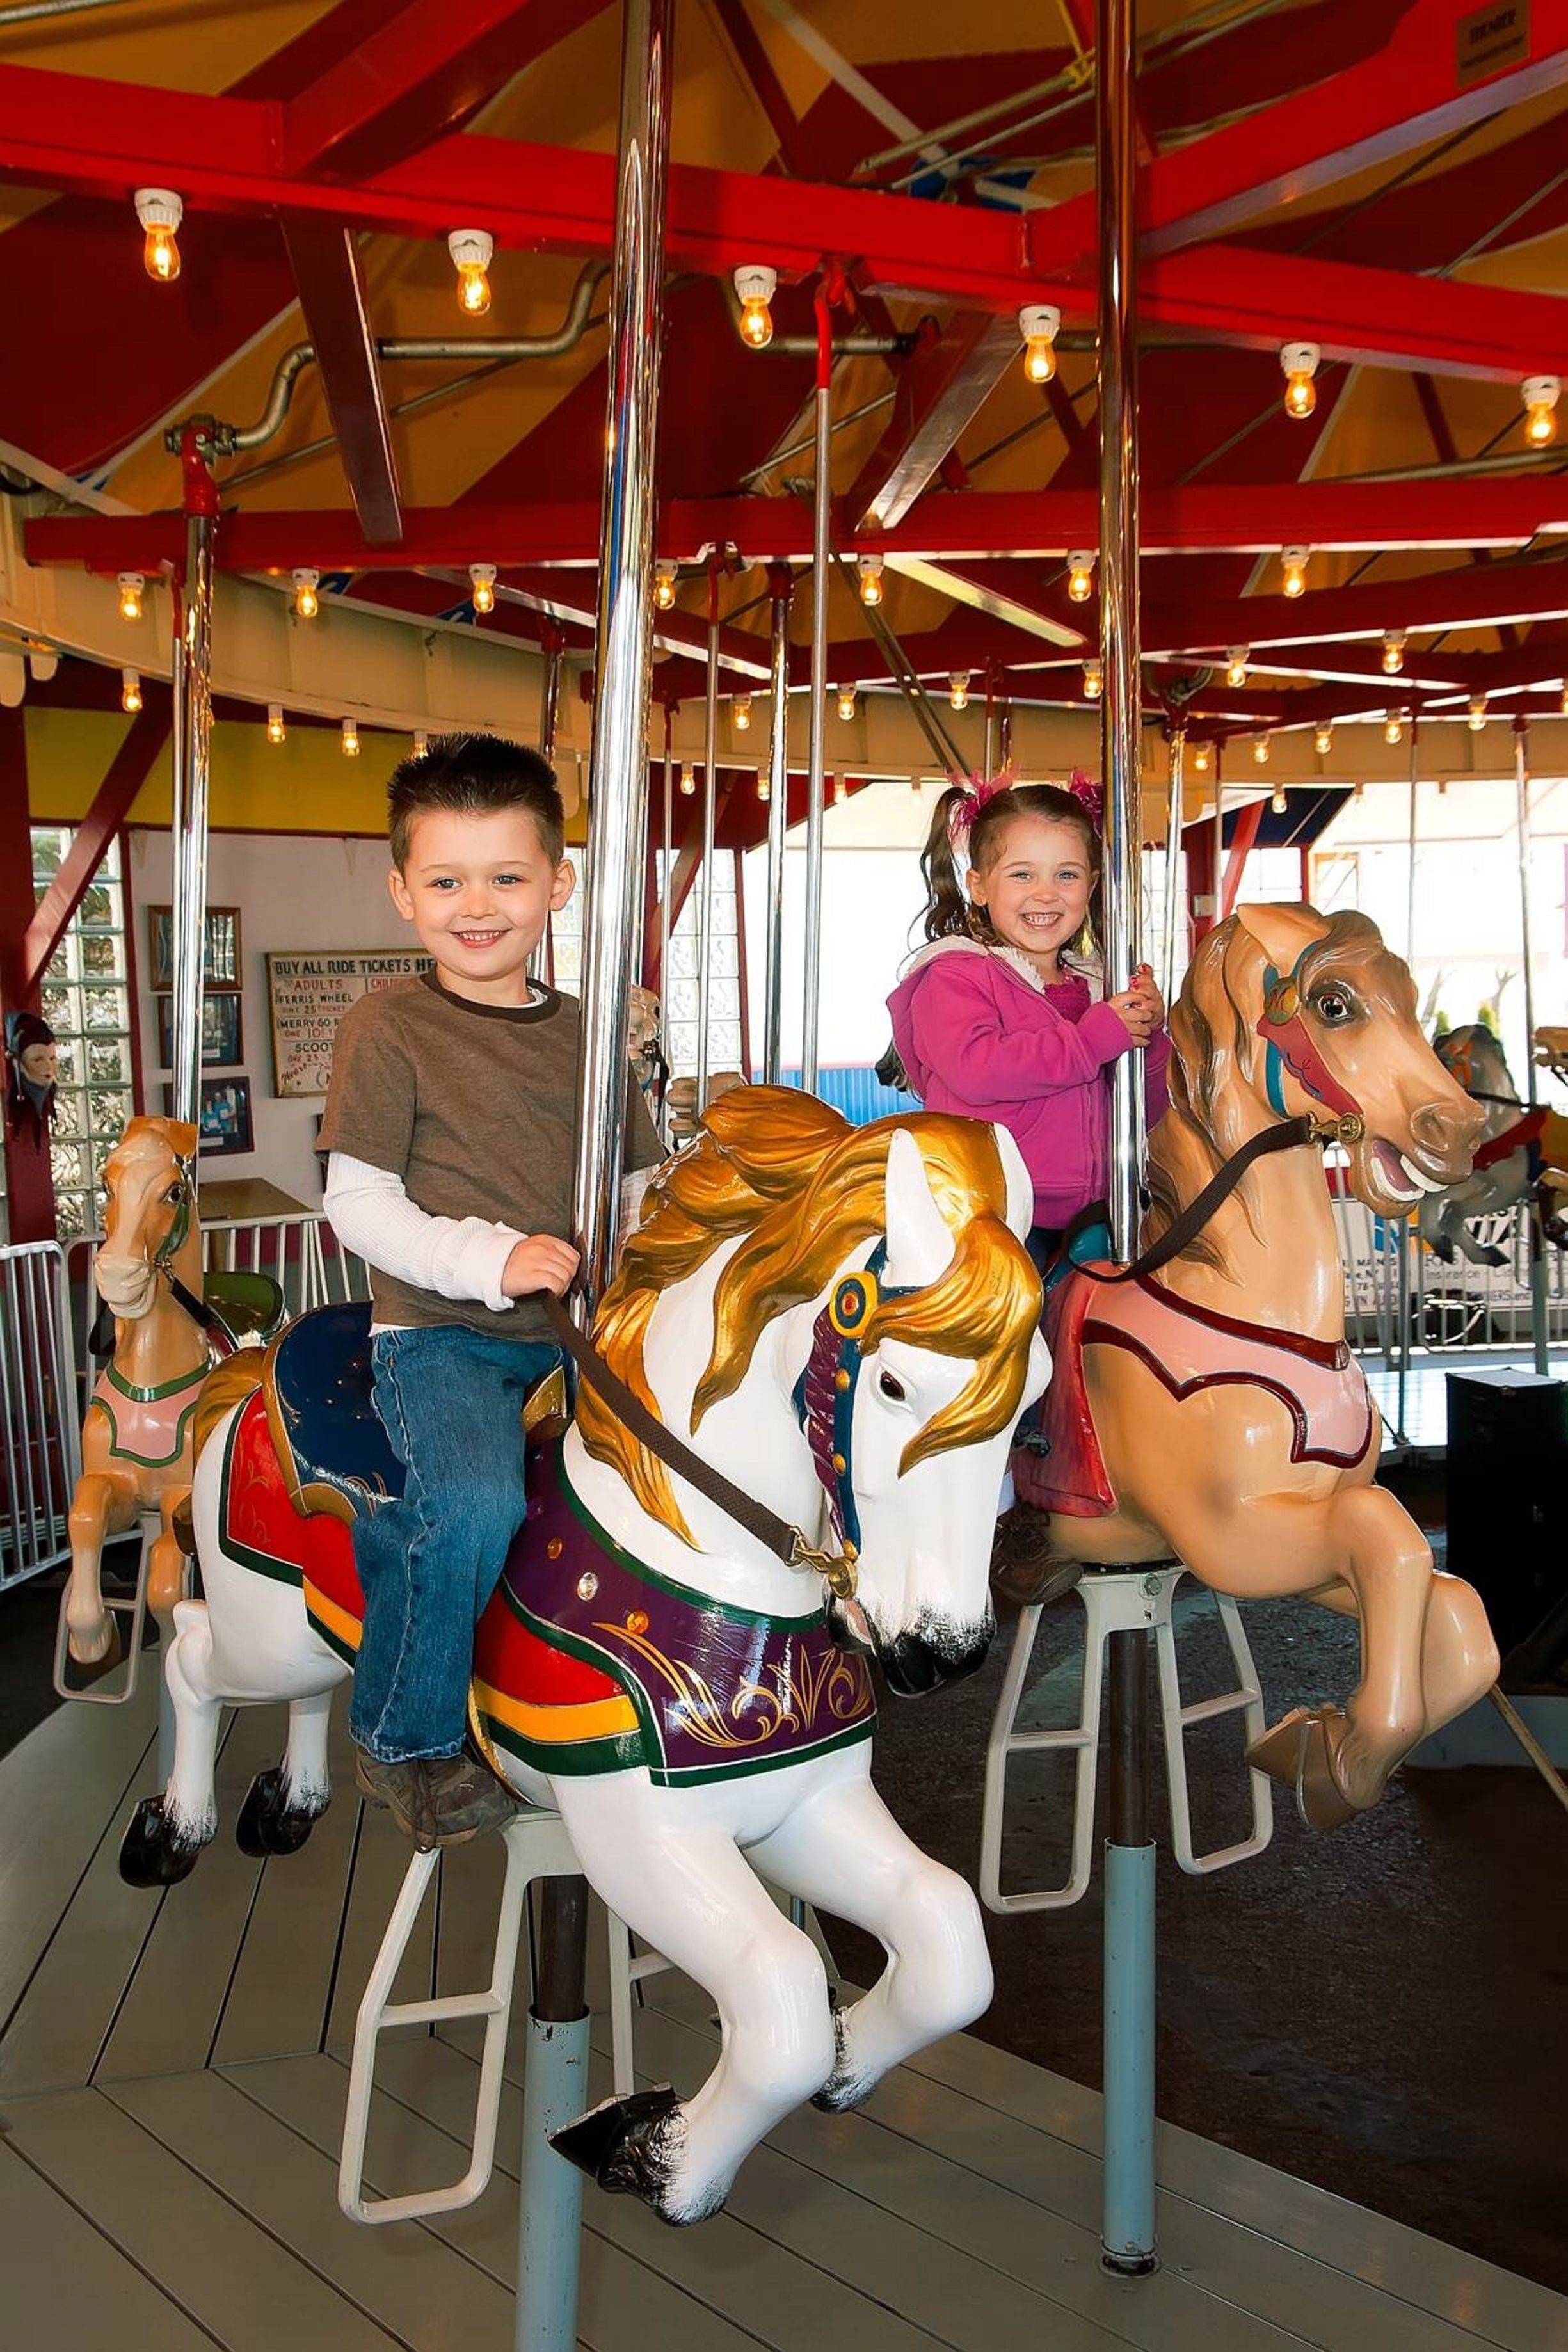 The painted ponies go up and down at Olcott Beach Carousel Park's 1928 Allen Herschel carousel.